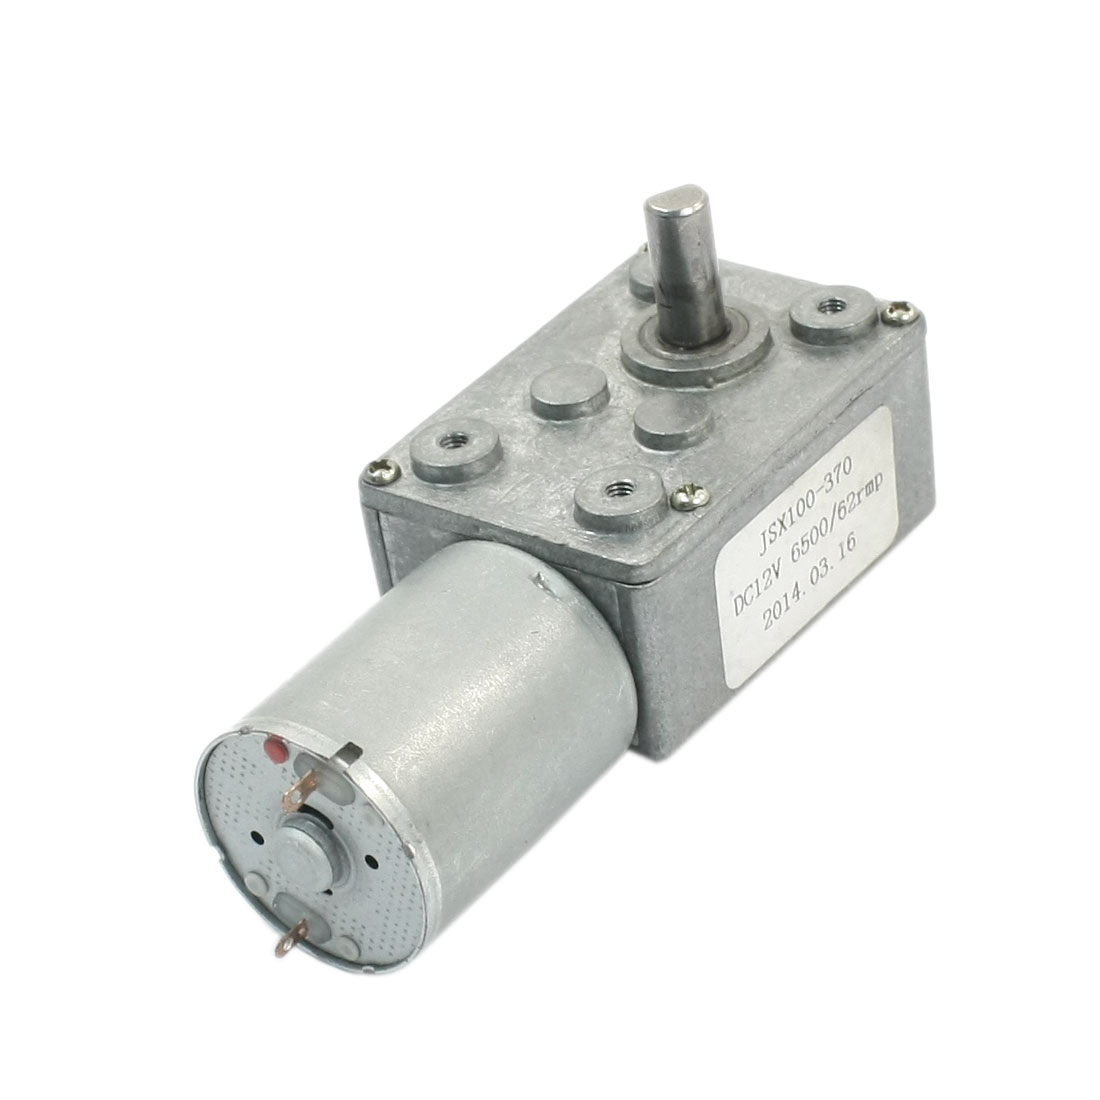 JSX100-370 DC 12V Reduction Ratio 6500RPM/62RPM Rotary Speed Reducer High Torque Worm Geared Box Motor